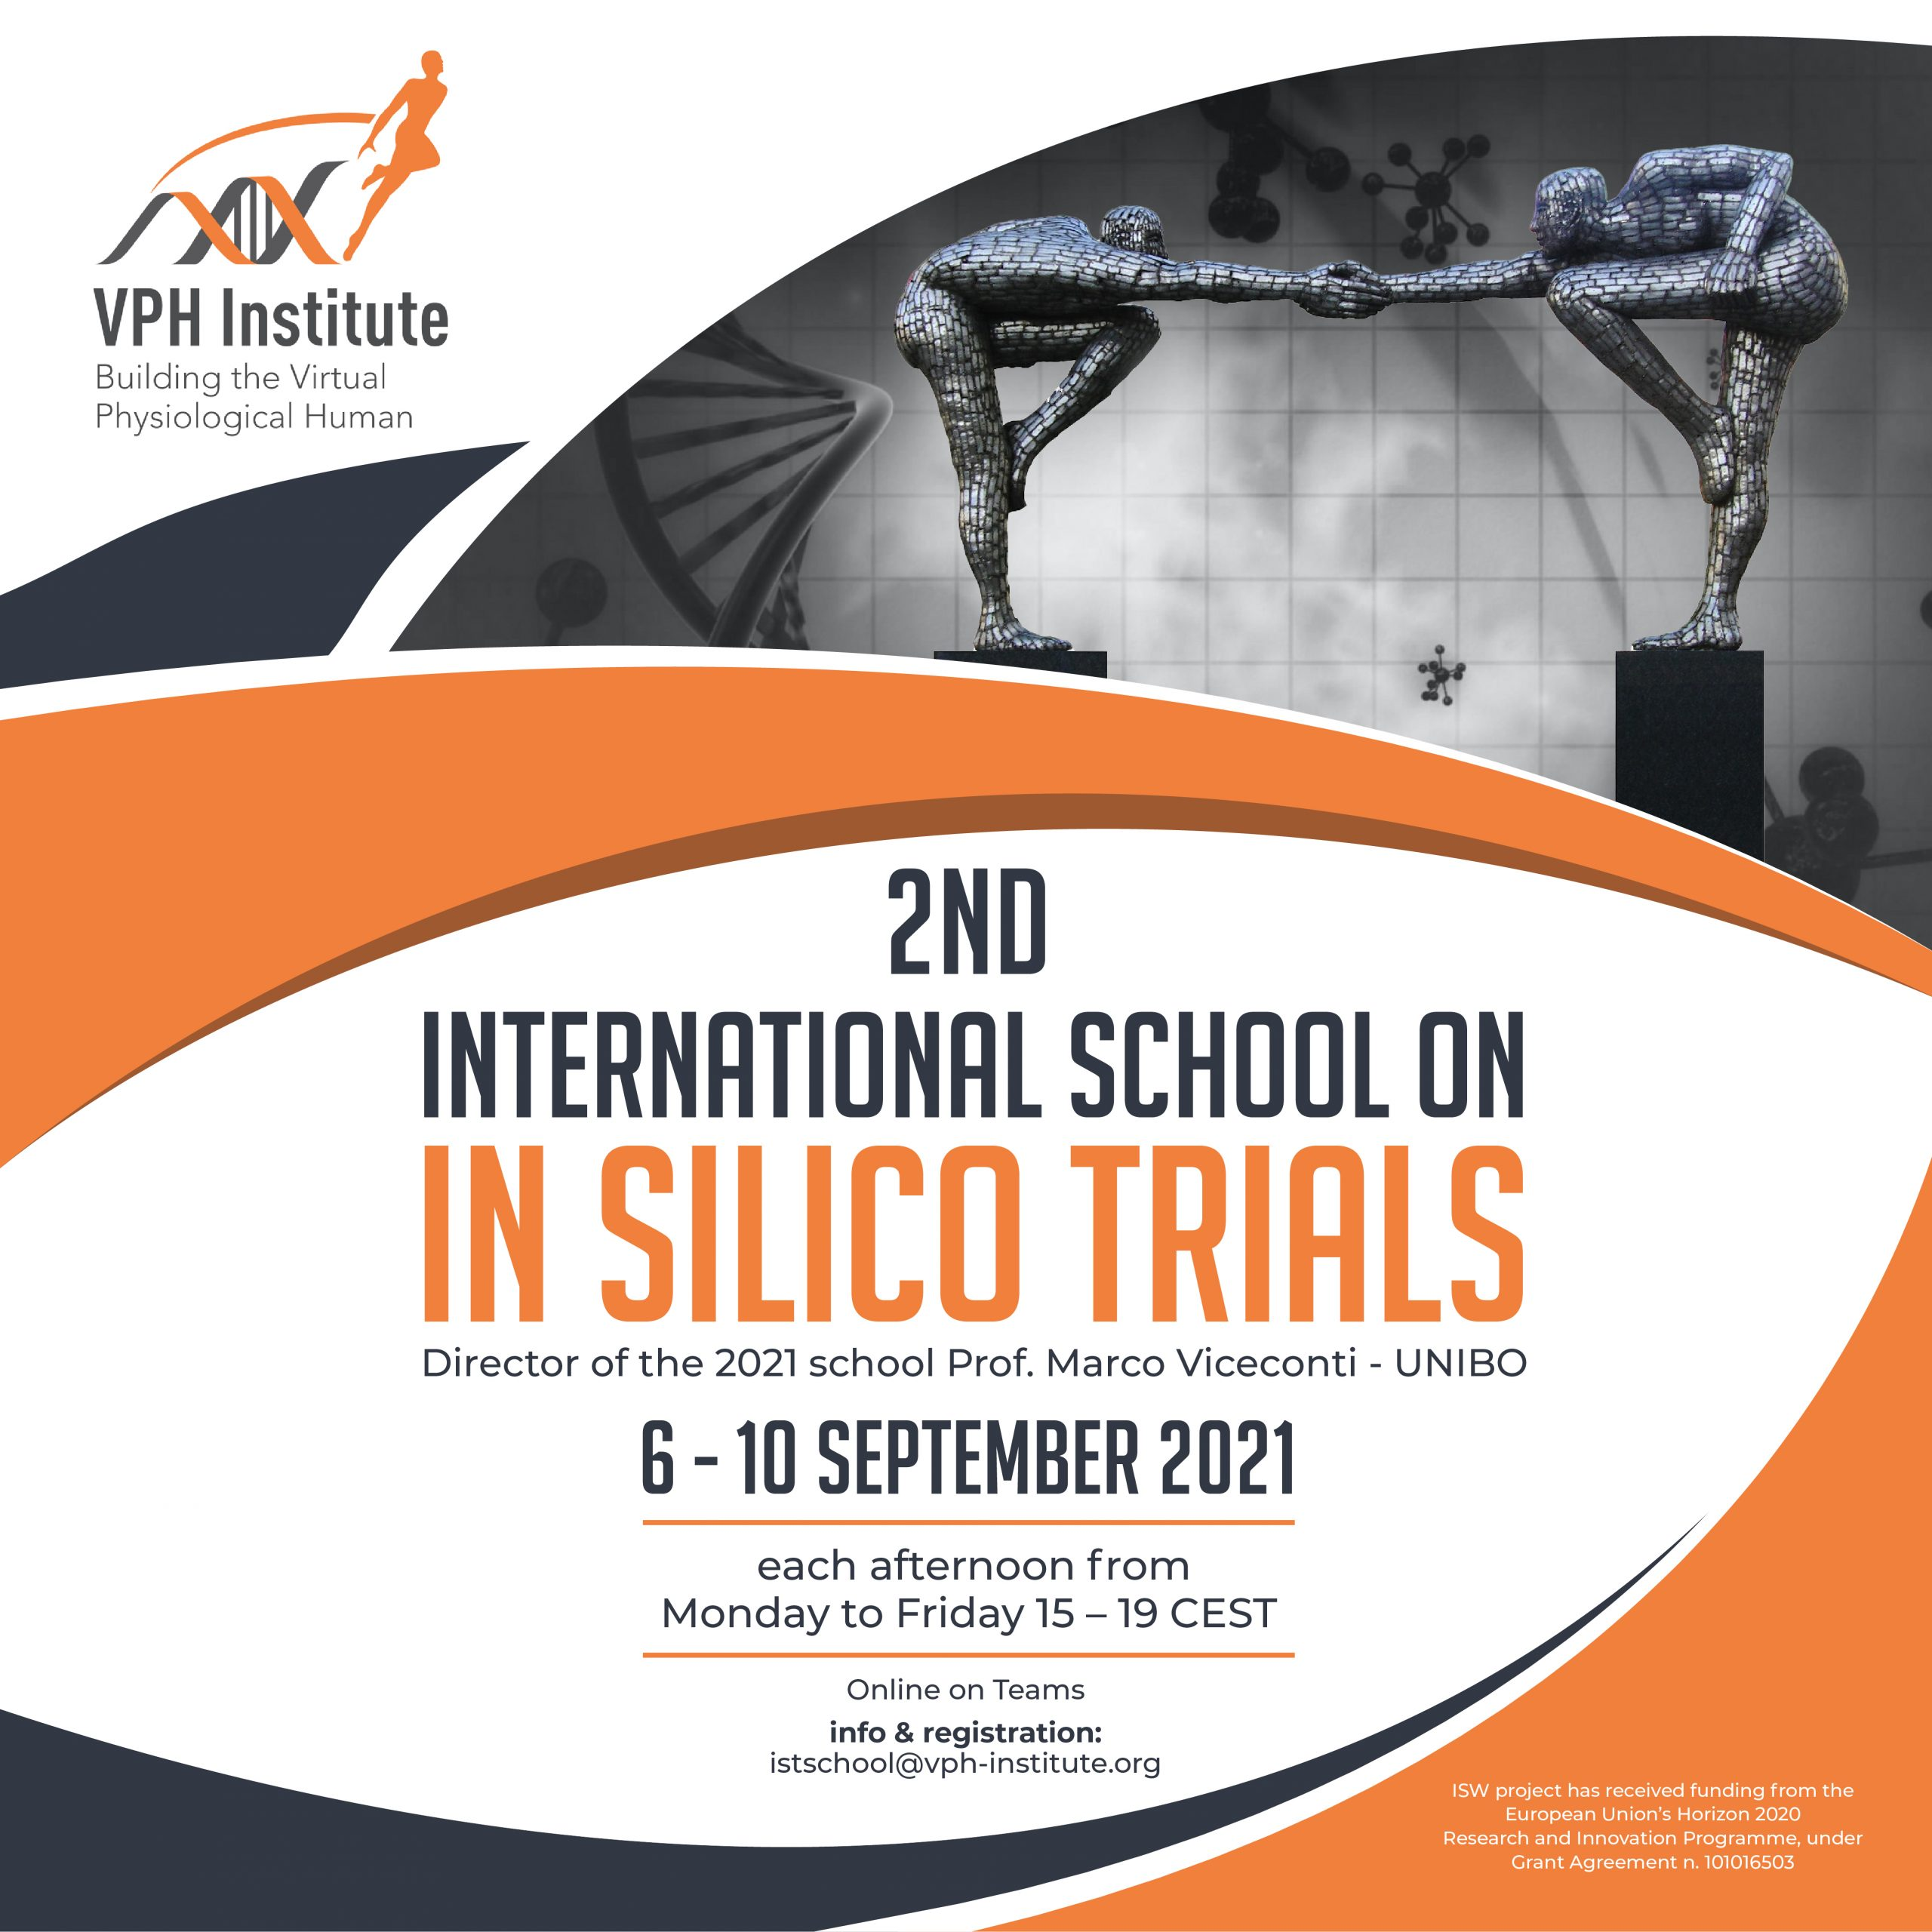 Insilico world - 2nd International School on In Silico Trials